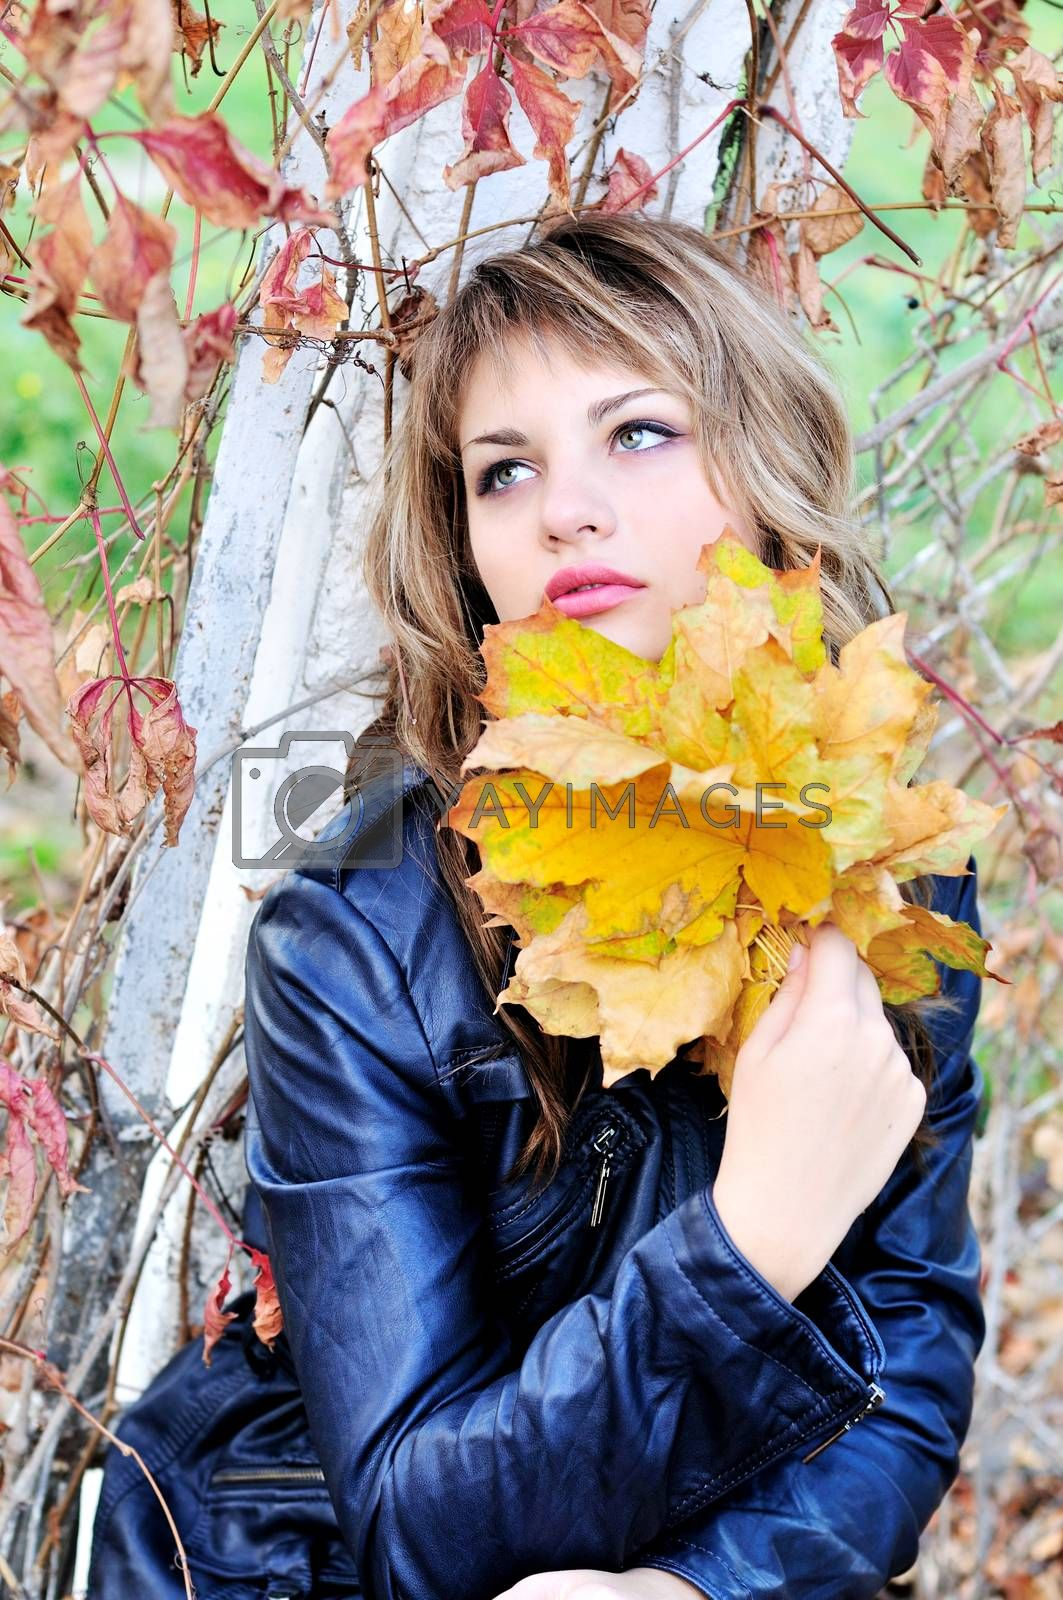 portrait of teen girl wering leather jacket with autumn leaves